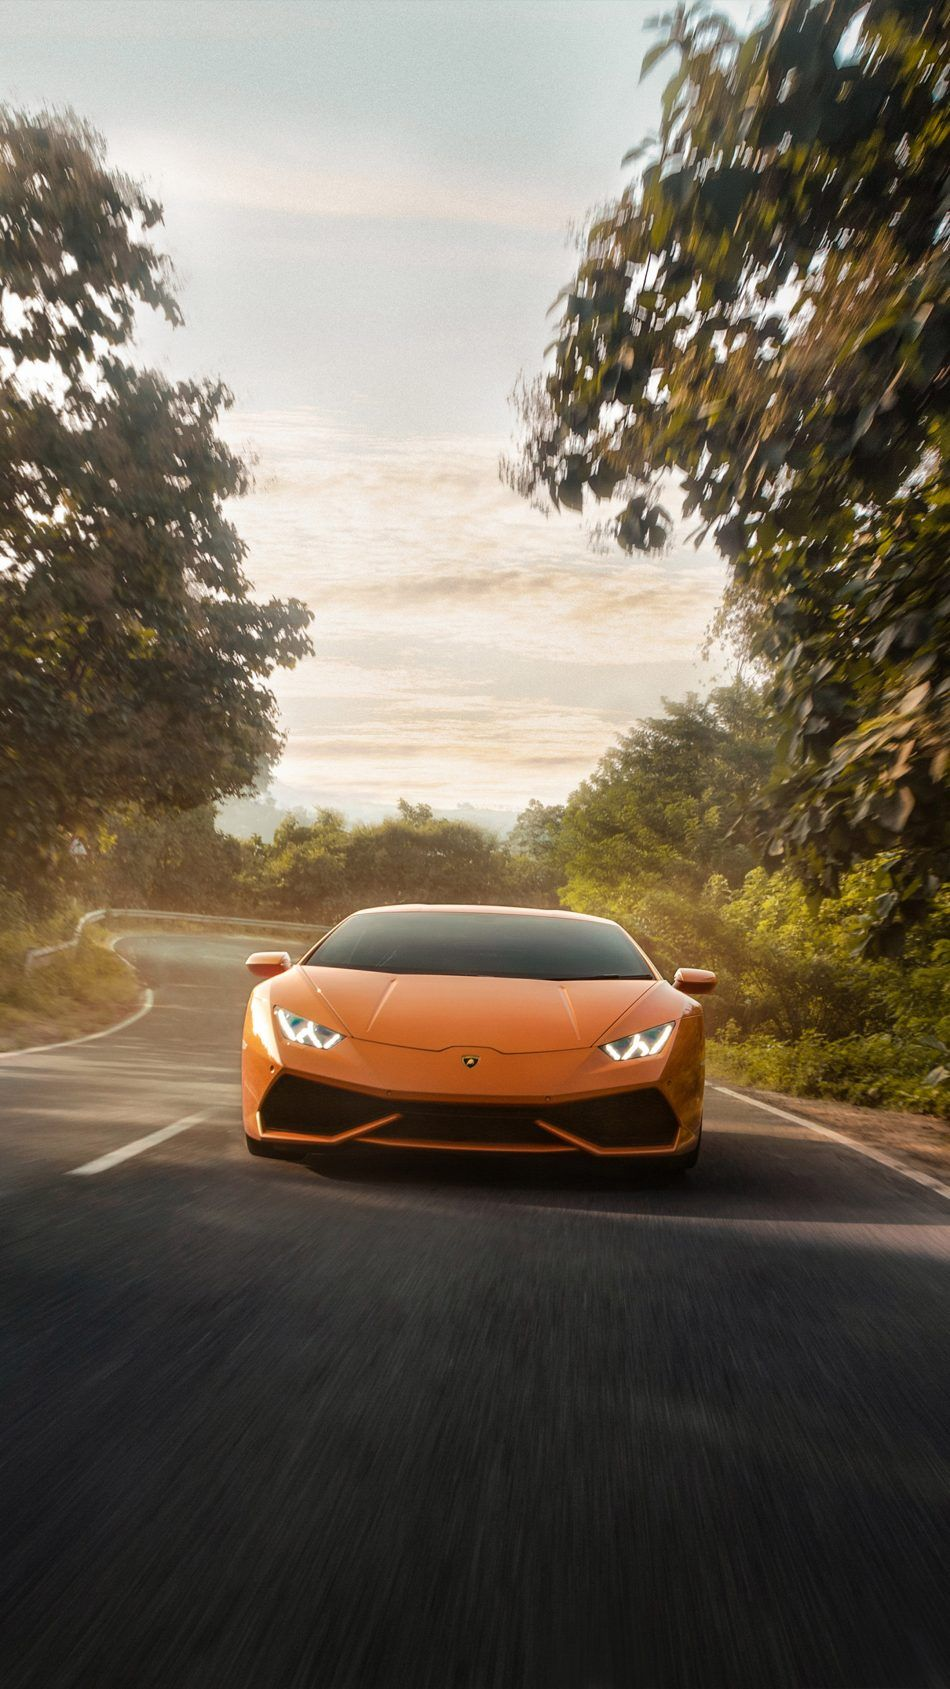 Lamborghini Huracan On Road 4k Ultra Hd Mobile Wallpaper Lamborghini Cars Car Wallpapers Lamborghini Huracan Orange